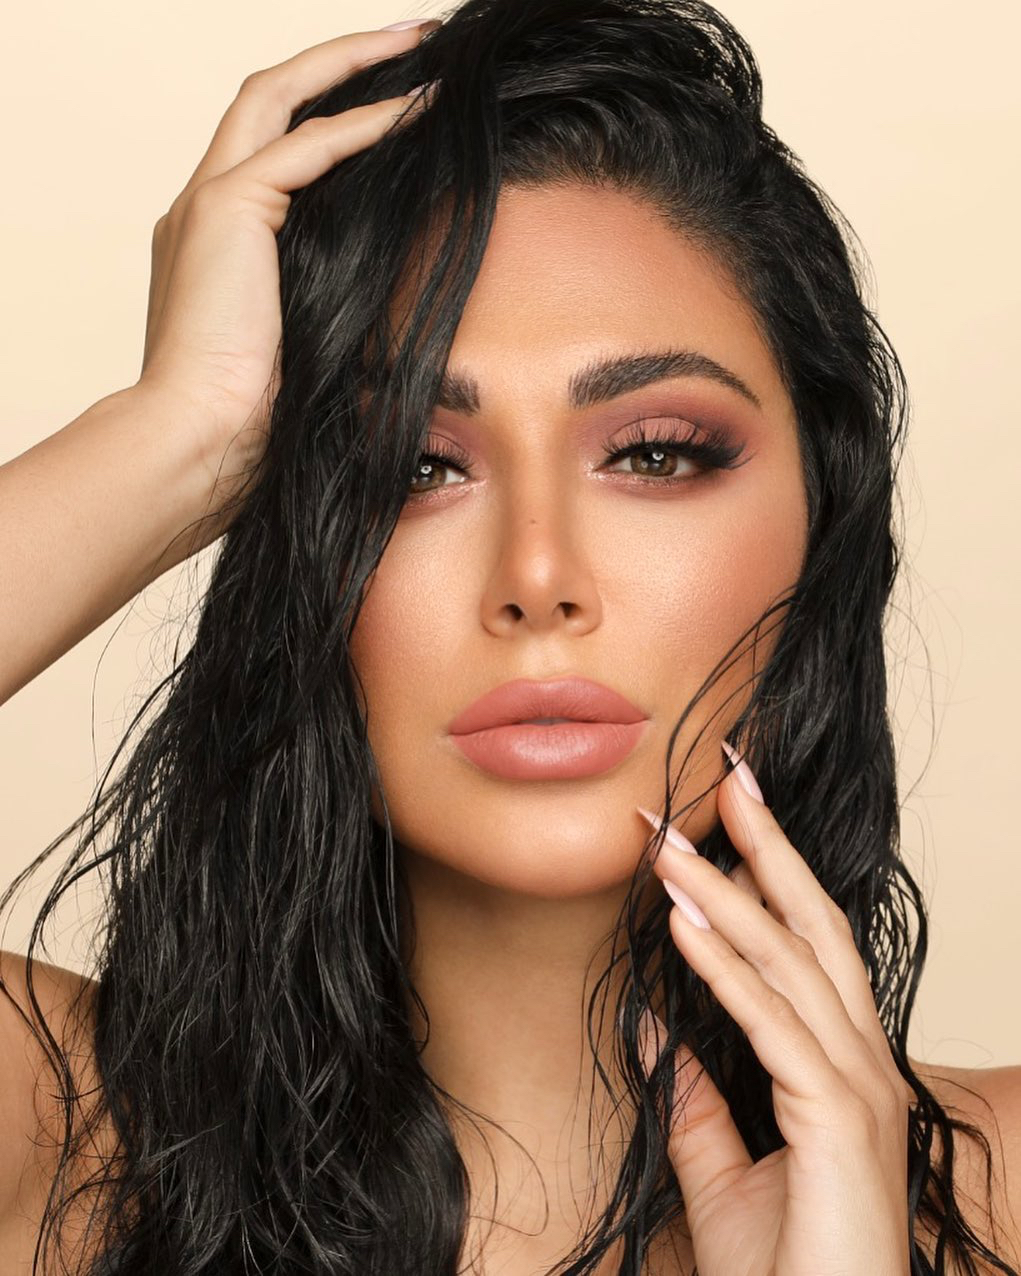 Hair Goals: 3 DIY Scalp Scrubs That Huda Kattan Swears By